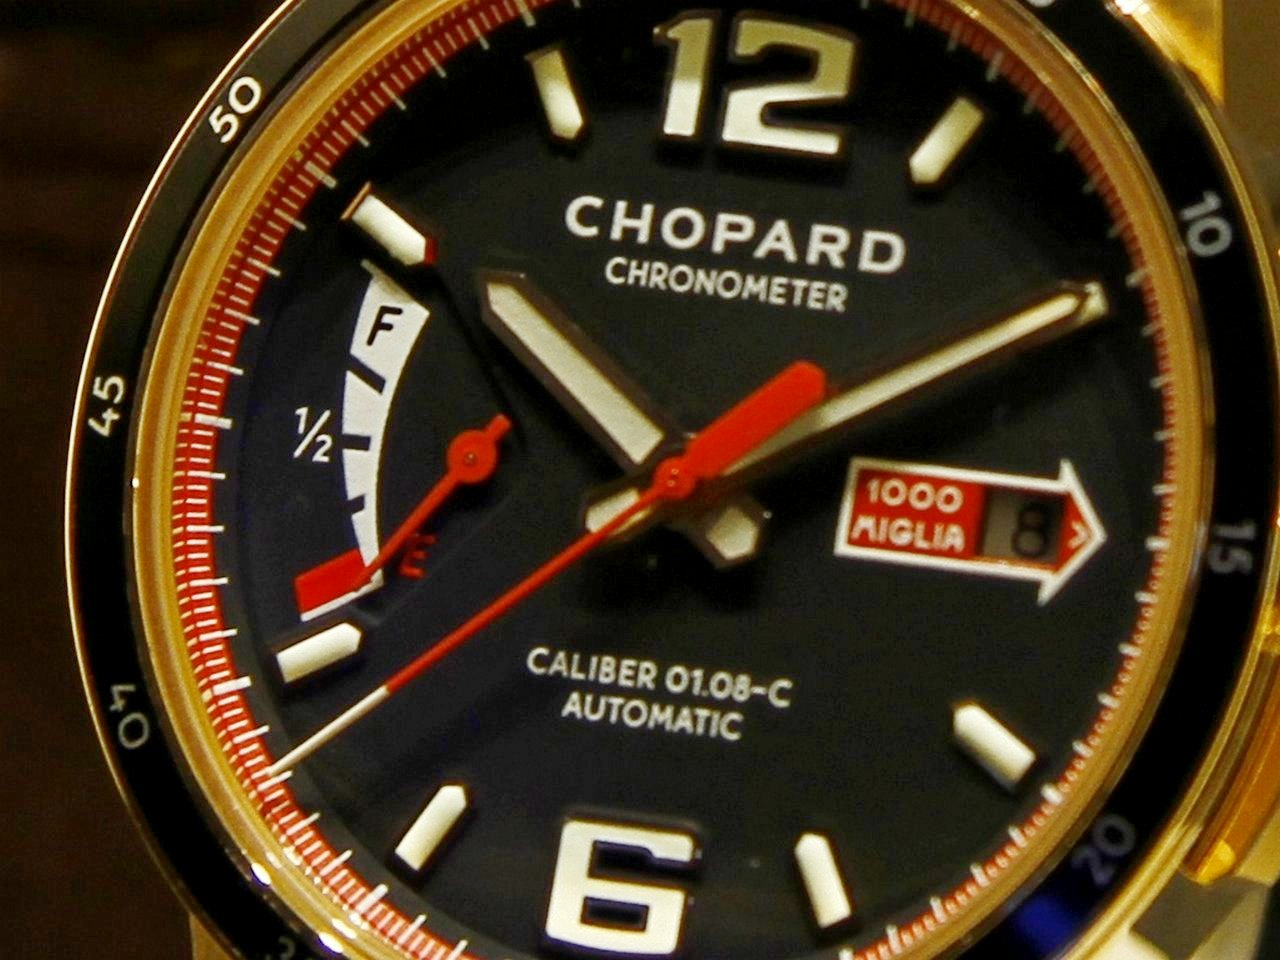 baselworld_2015-chopard-gts-mille-miglia-power-control-0-100_3